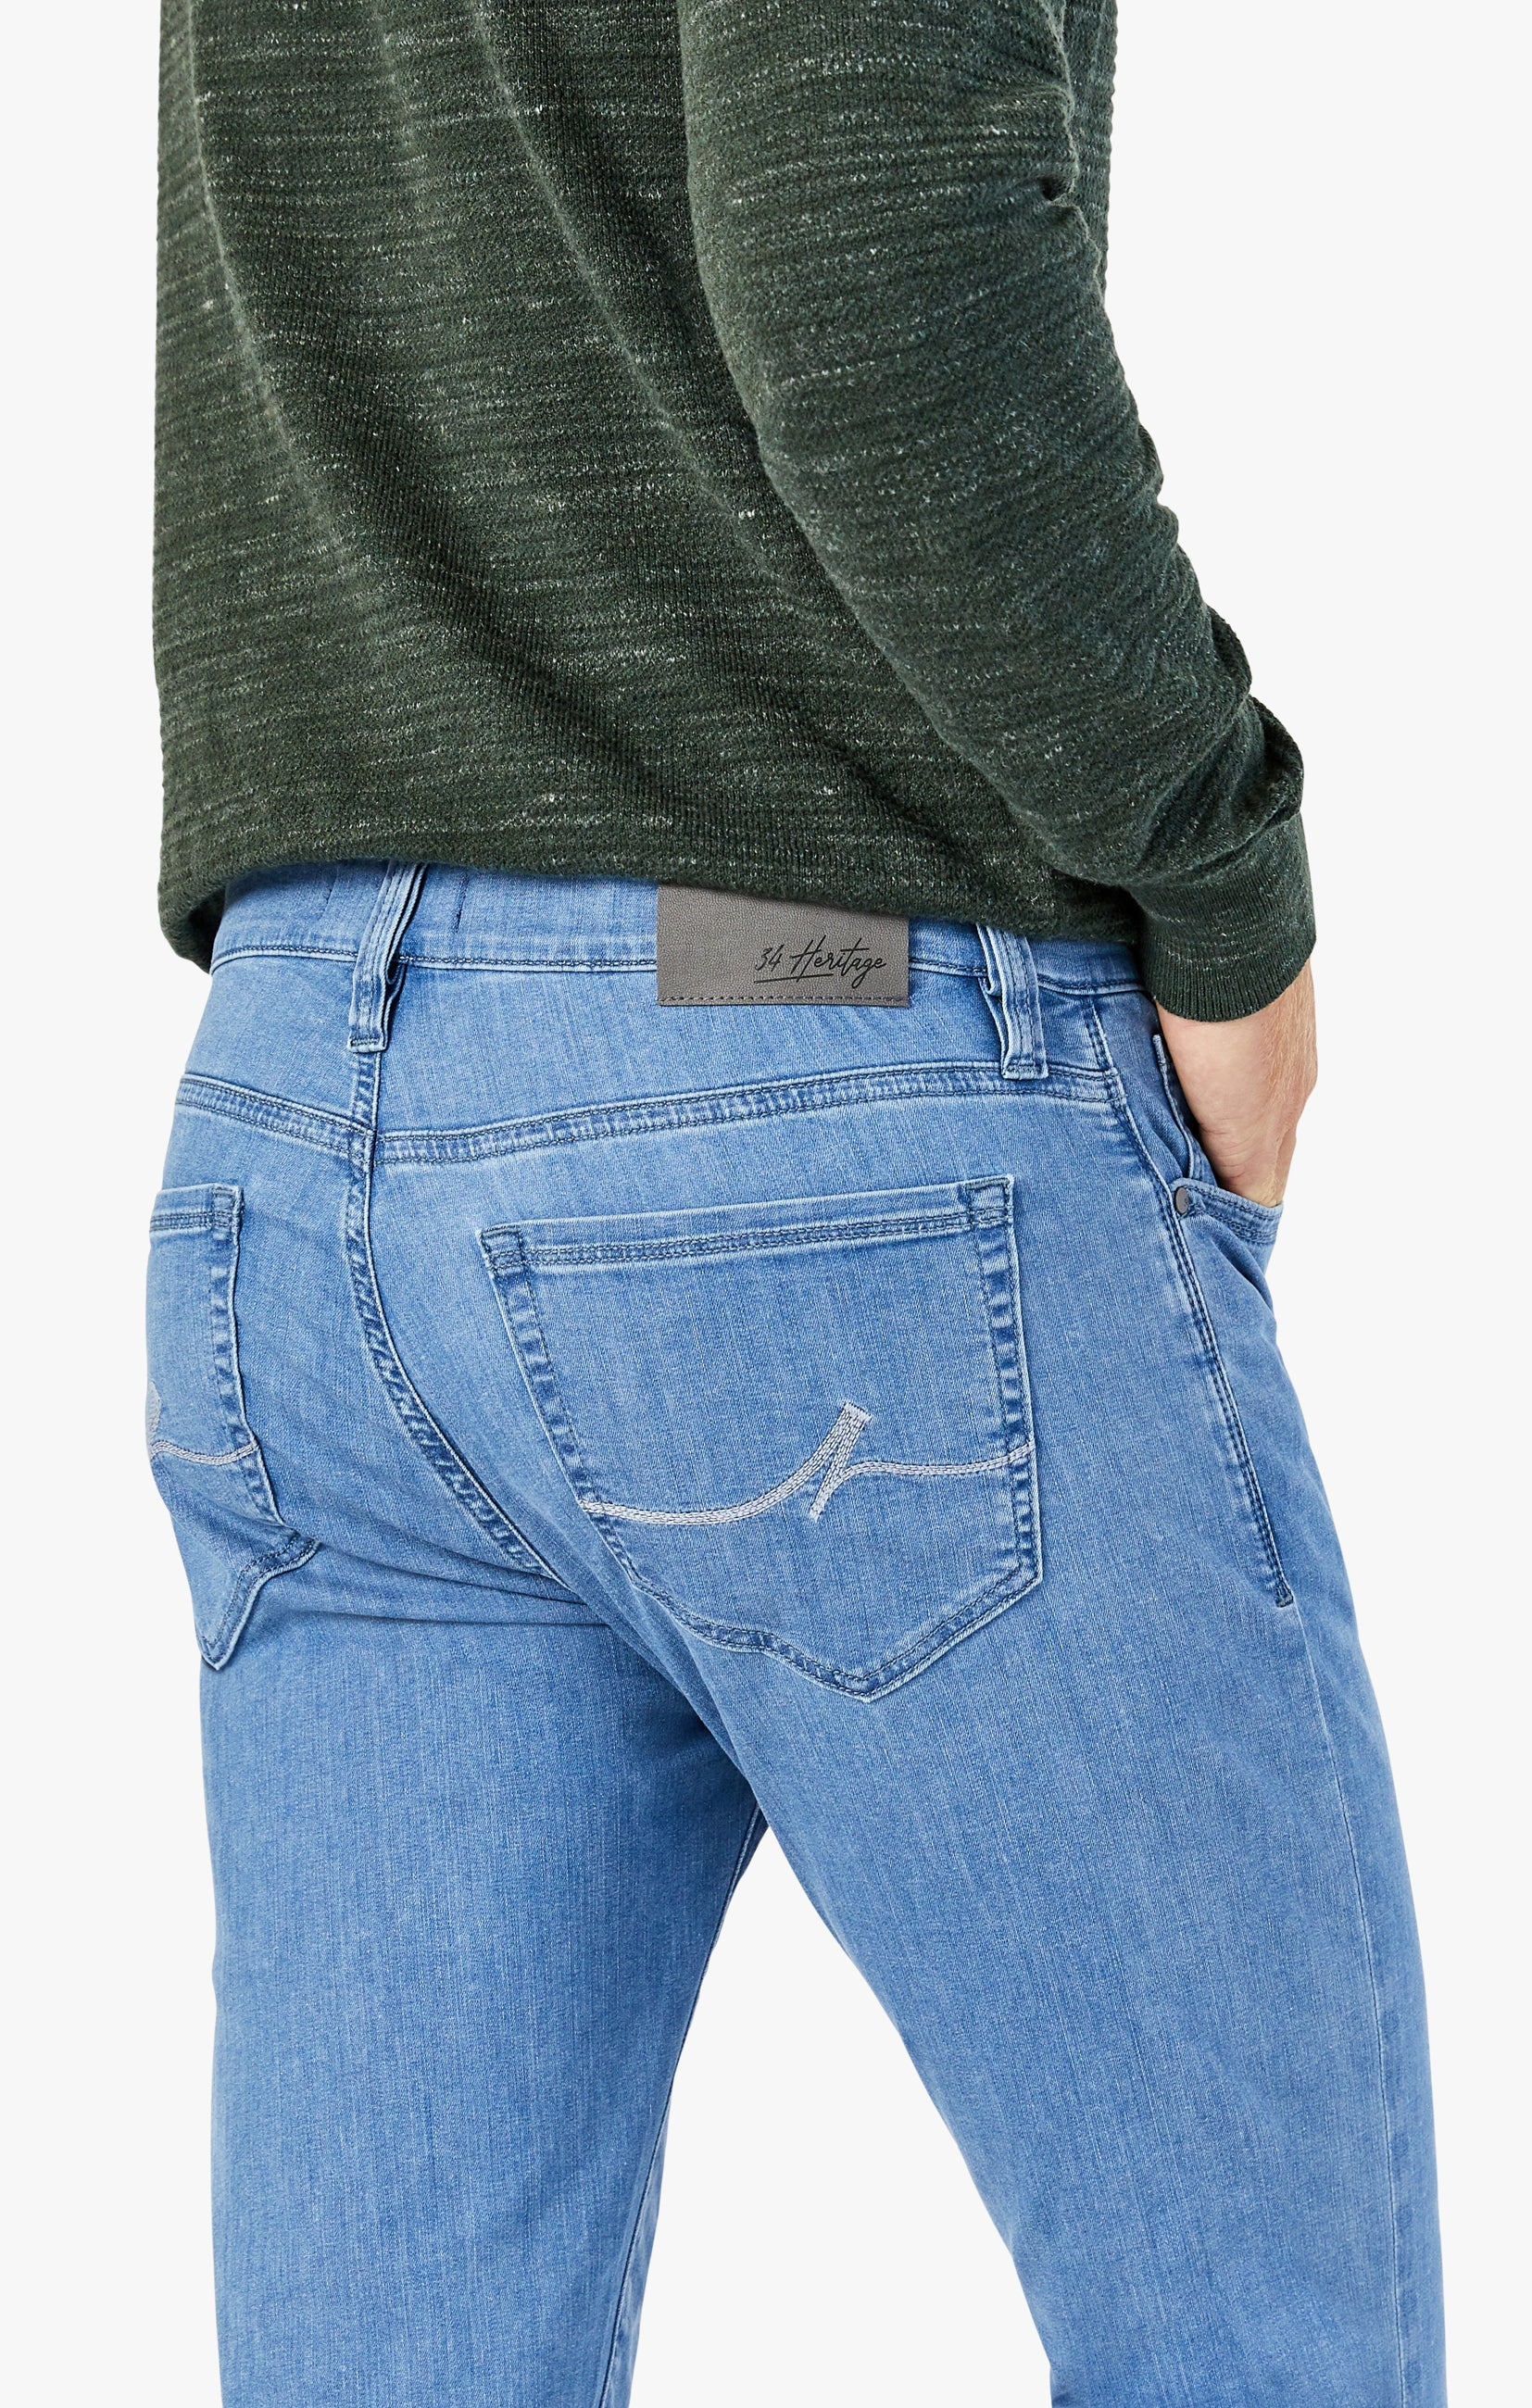 Courage Straight Leg Jeans In Light Kona Image 6